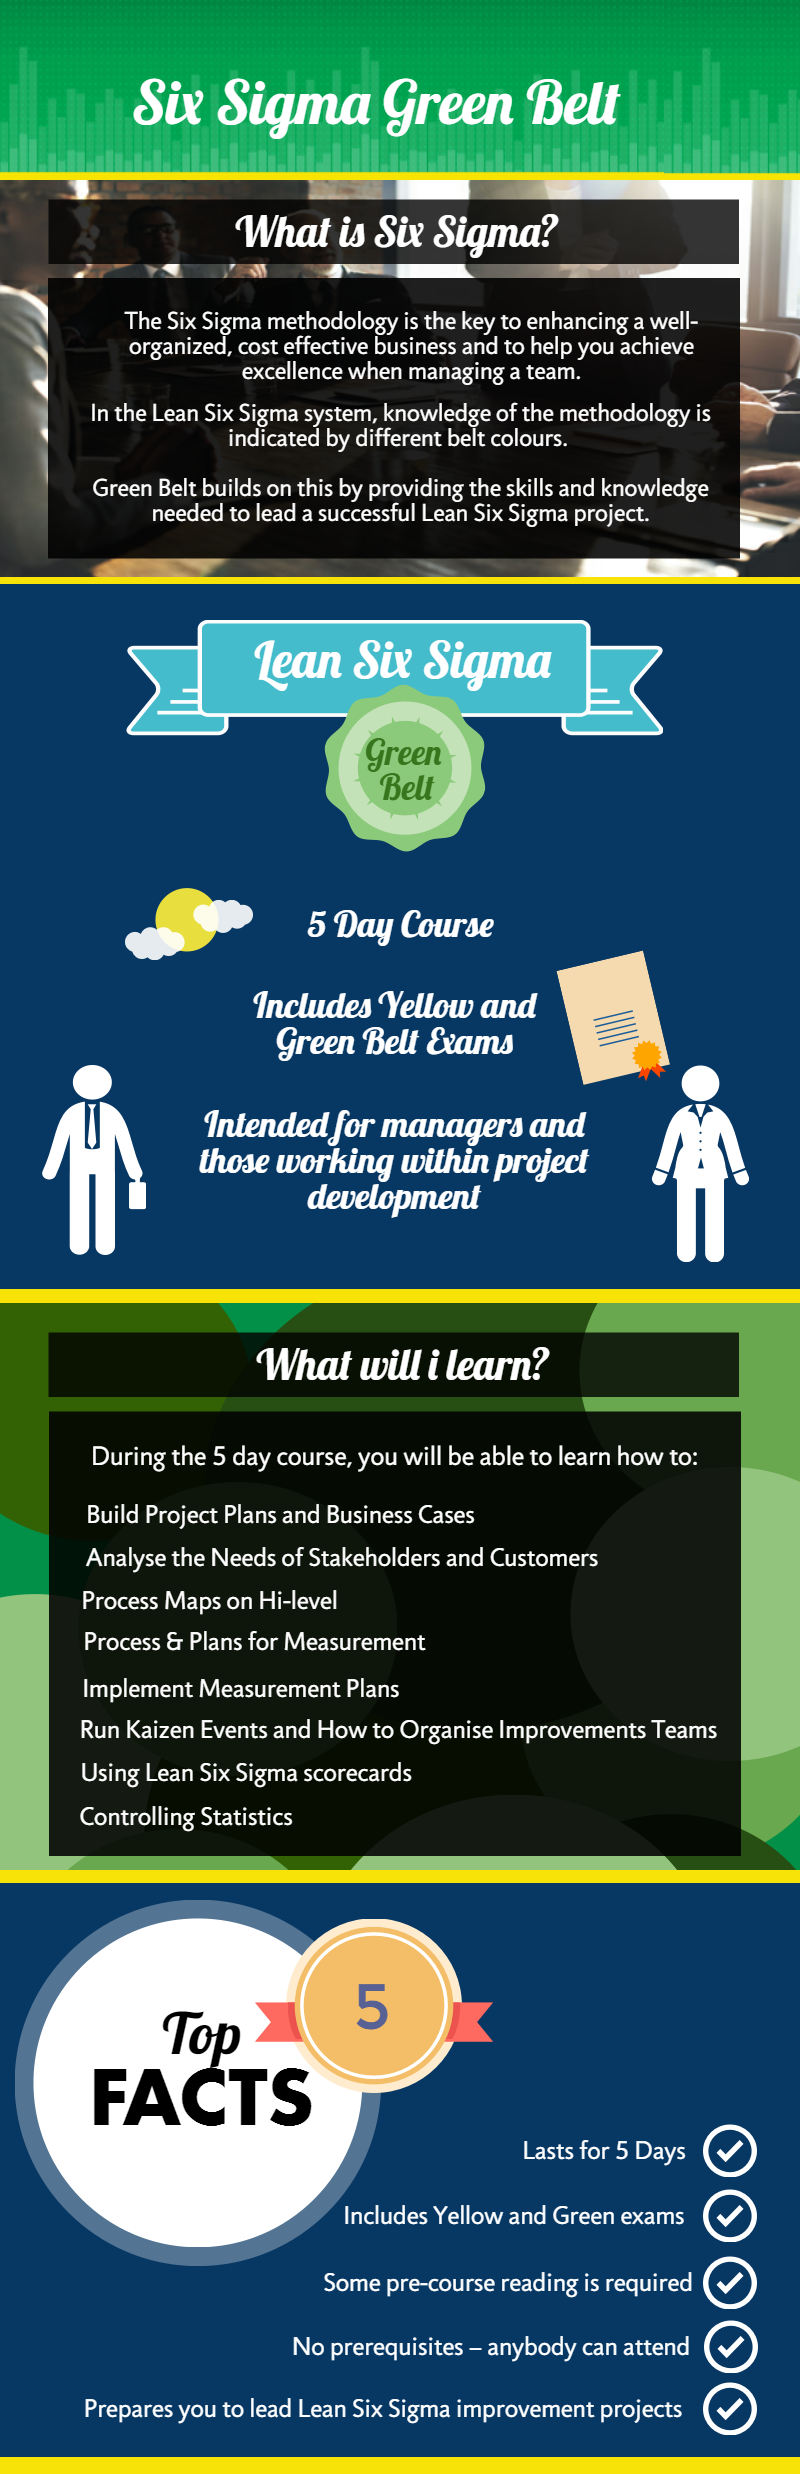 Six Sigma Green Belt by SixSigma.co.uk